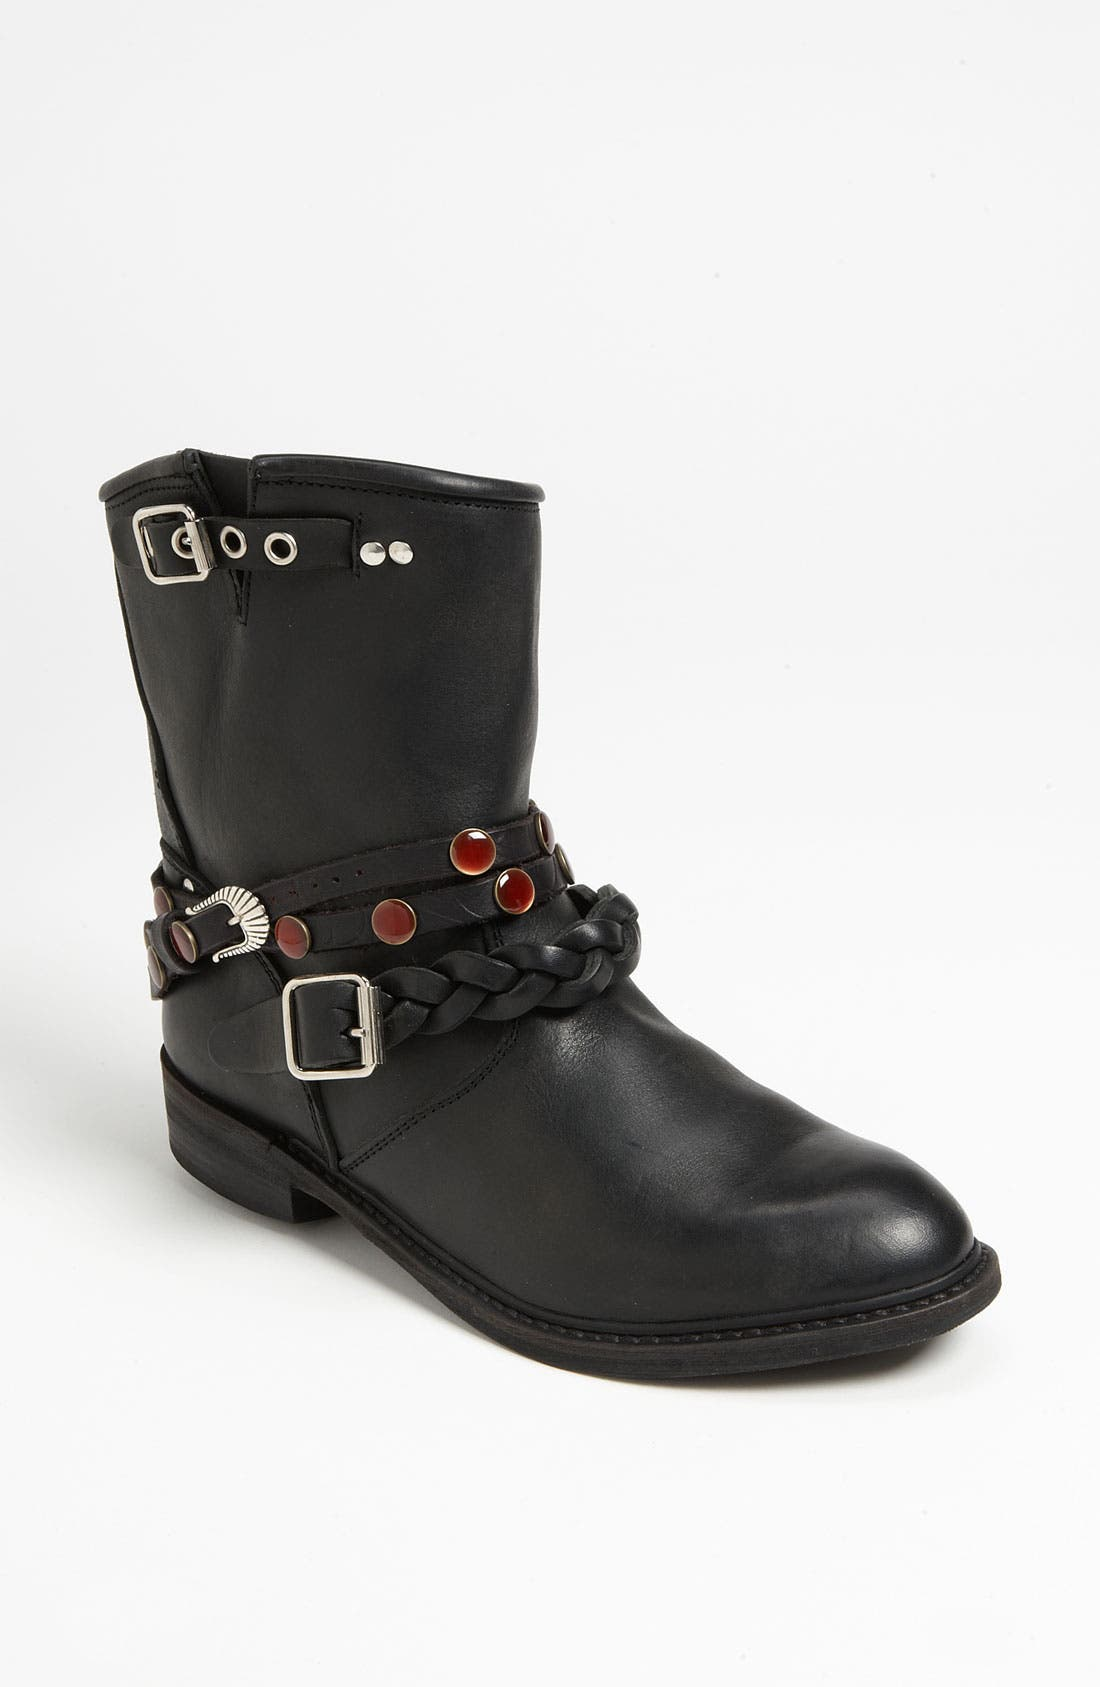 Main Image - Golden Goose Short Biker Boot